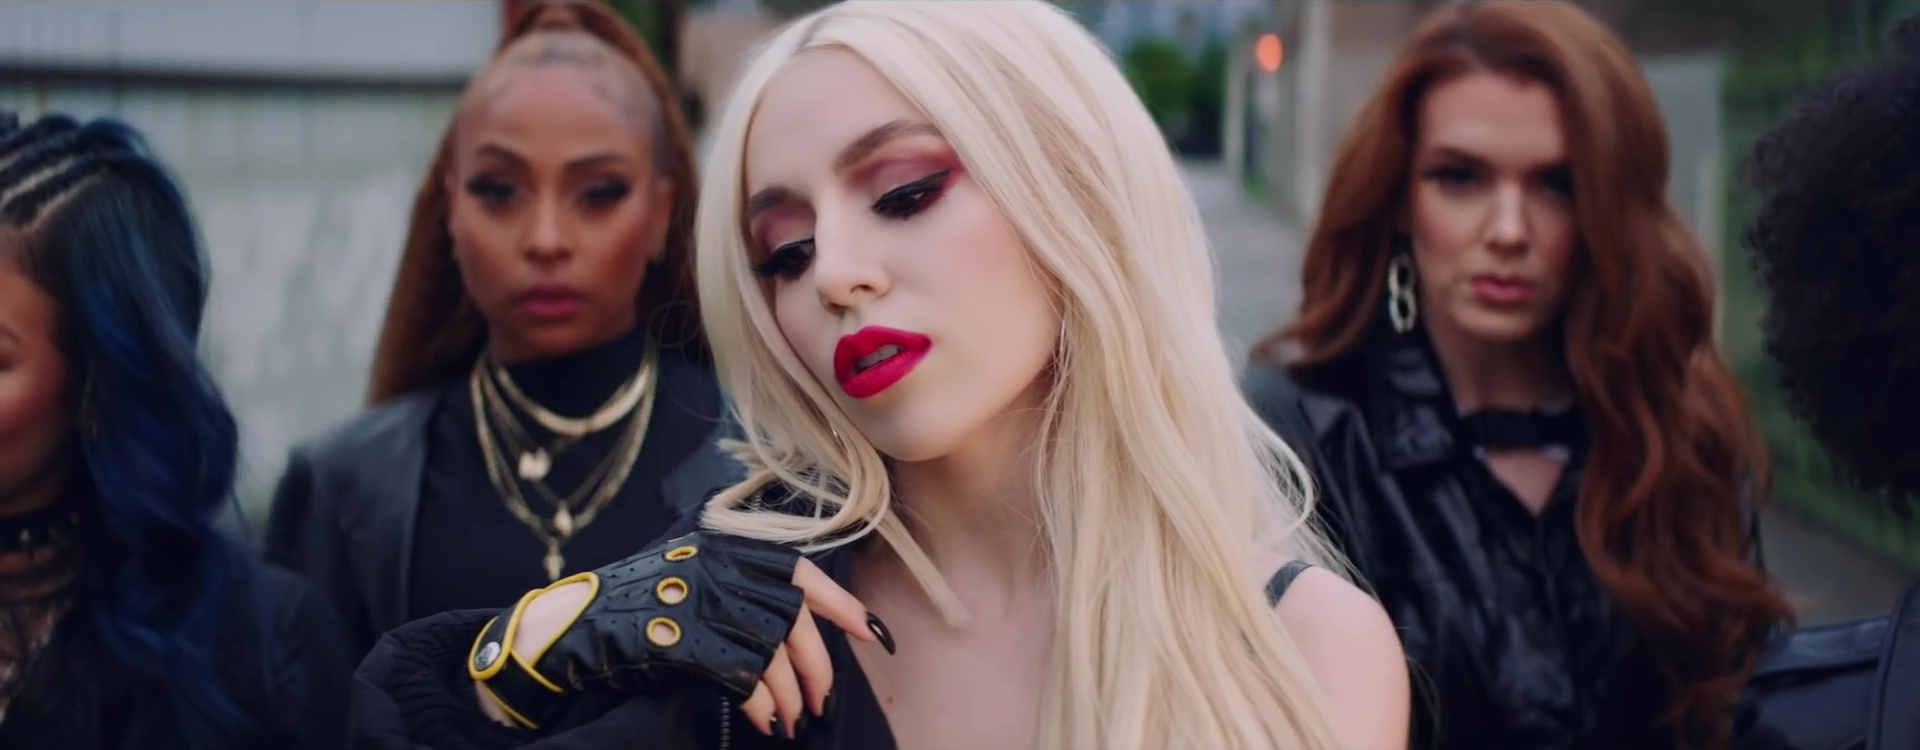 ava max clip who's laughing now heaven & hell